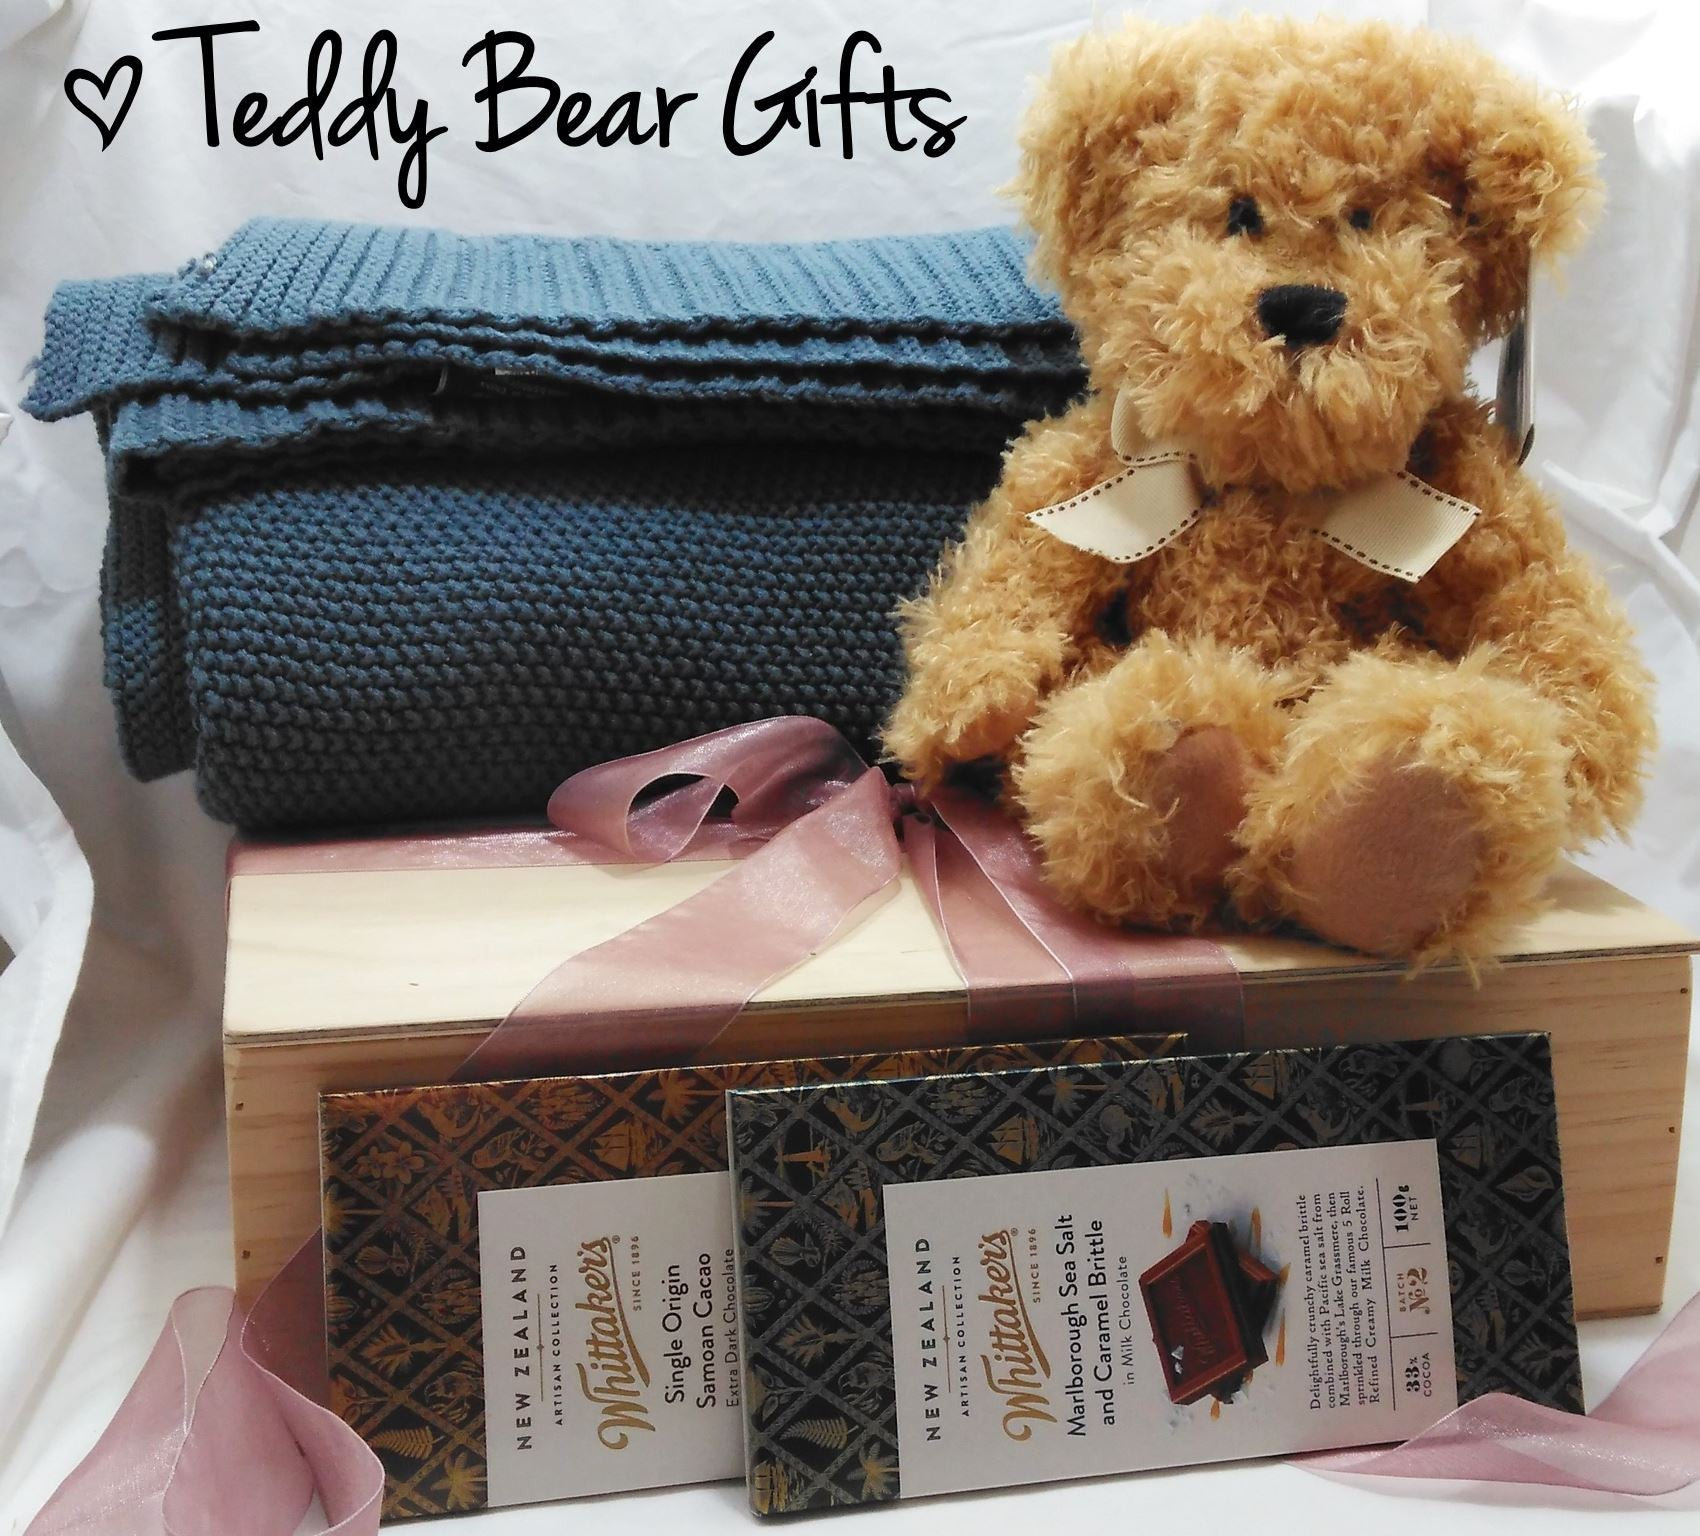 Teddy bear gifts have arrived!